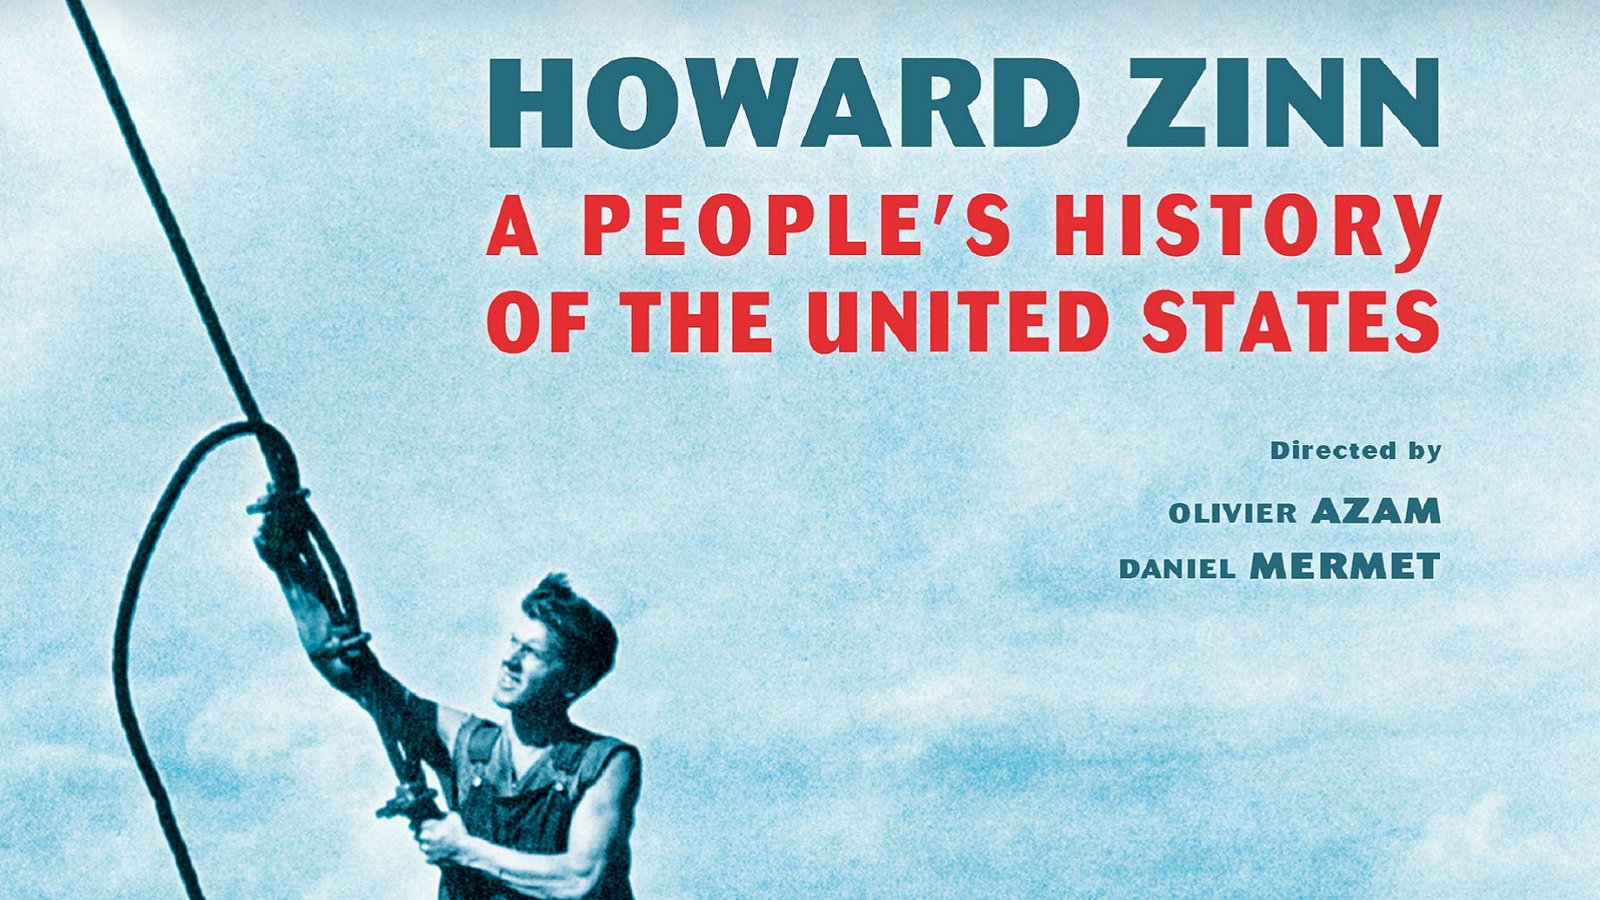 Howard Zinn: A People's History of the United States